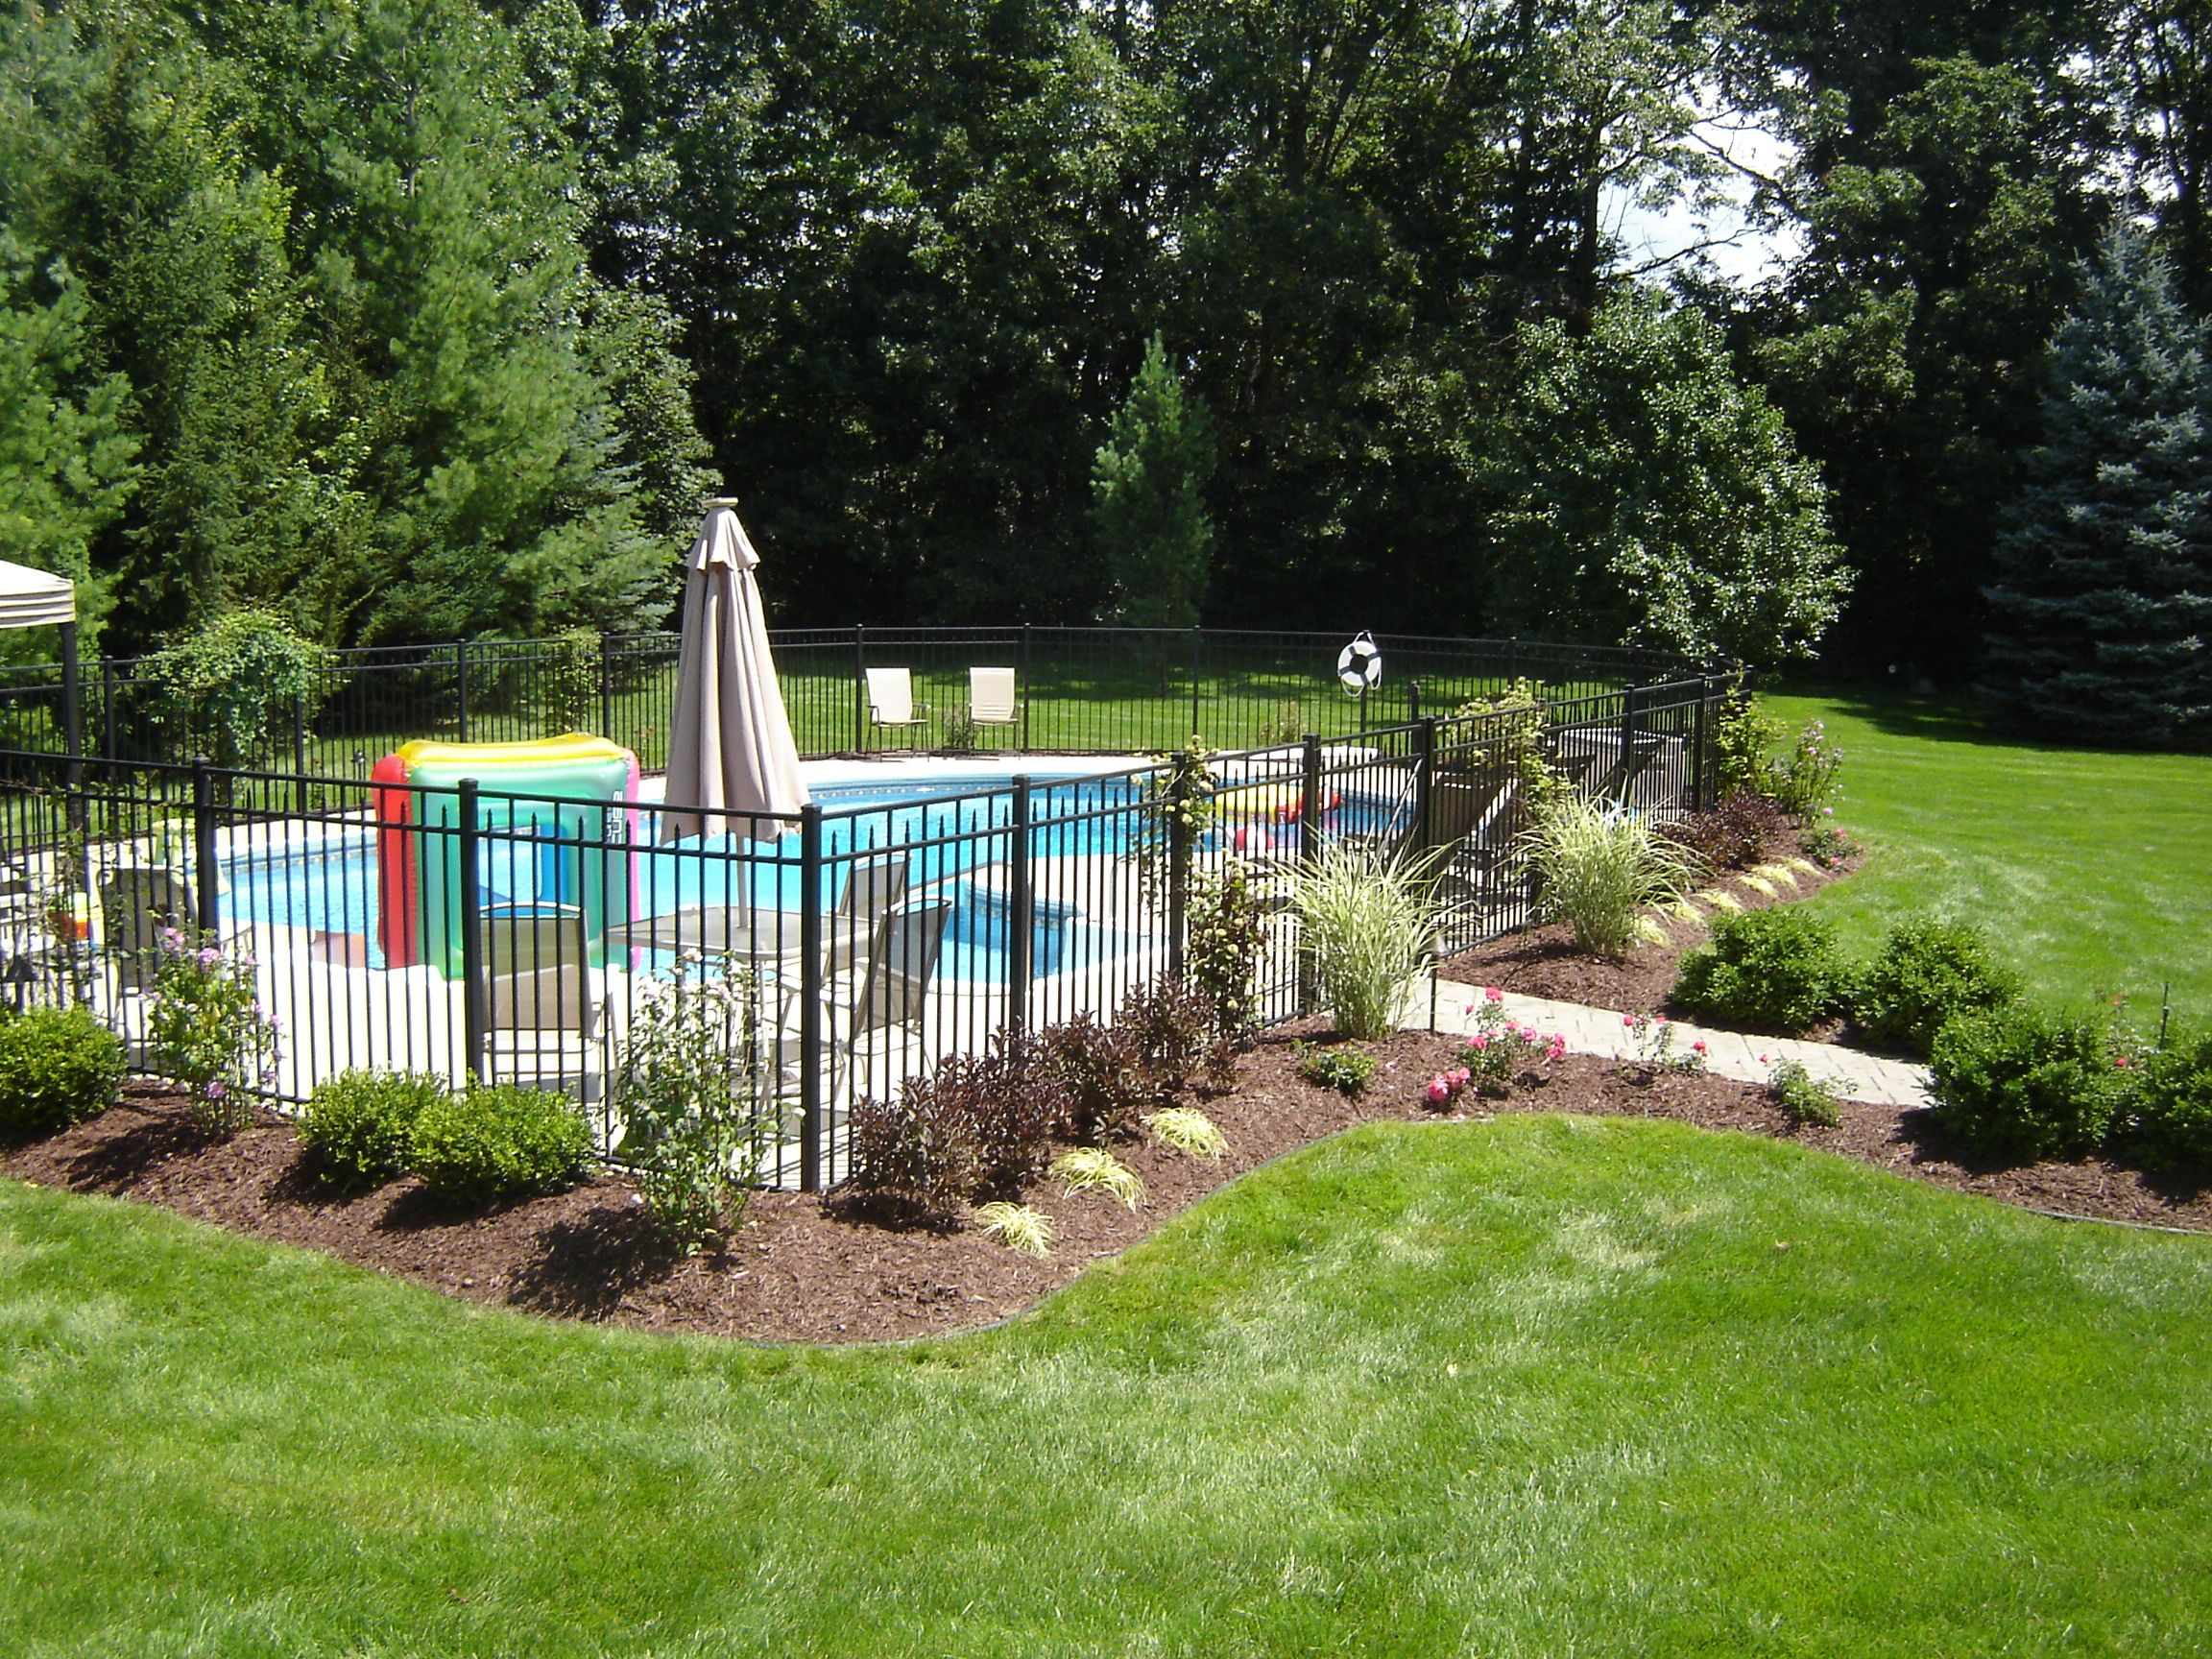 Pin By All Natural Landscapes On Landscaping Inground Pool Landscaping Landscaping Around Pool Backyard Pool Landscaping